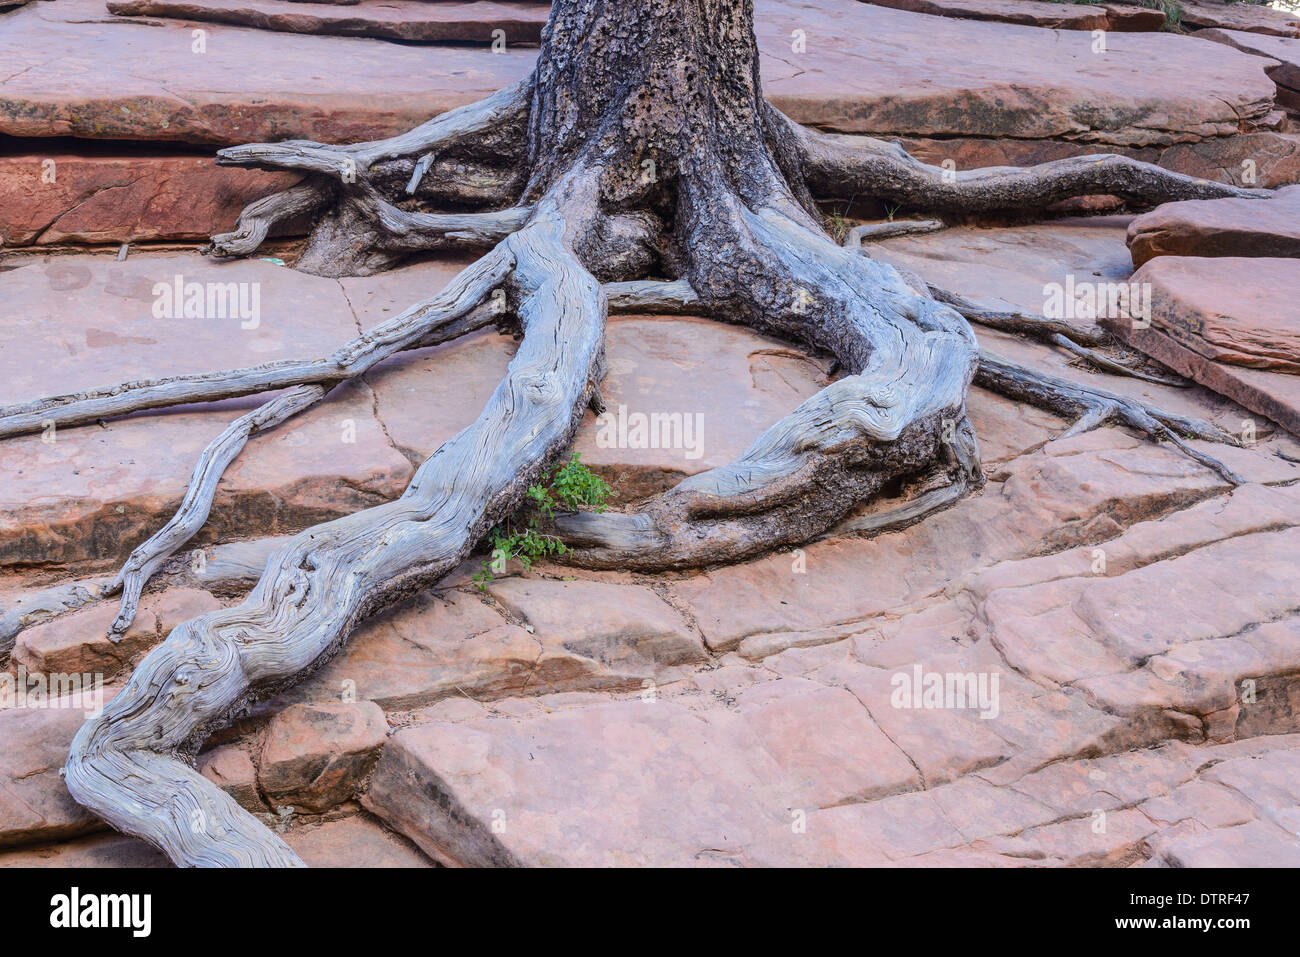 Ponderosa Pine Tree Roots clinging to the slickrock, near Scouts Lookout, Zion National Park, Utah, USA - Stock Image